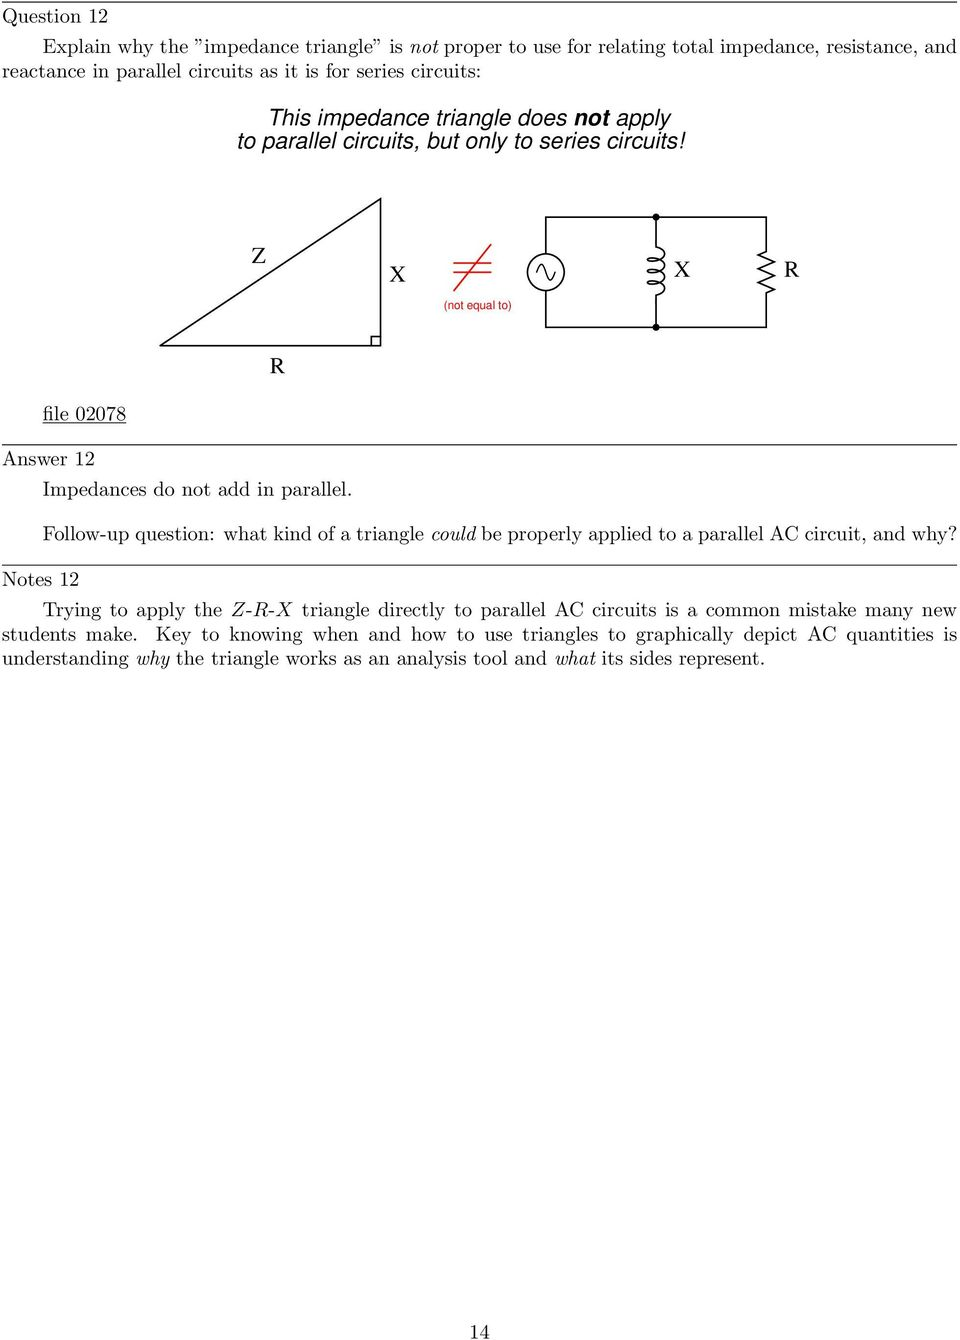 Follow-up question: what kind of a triangle could be properly applied to a parallel AC circuit, and why?